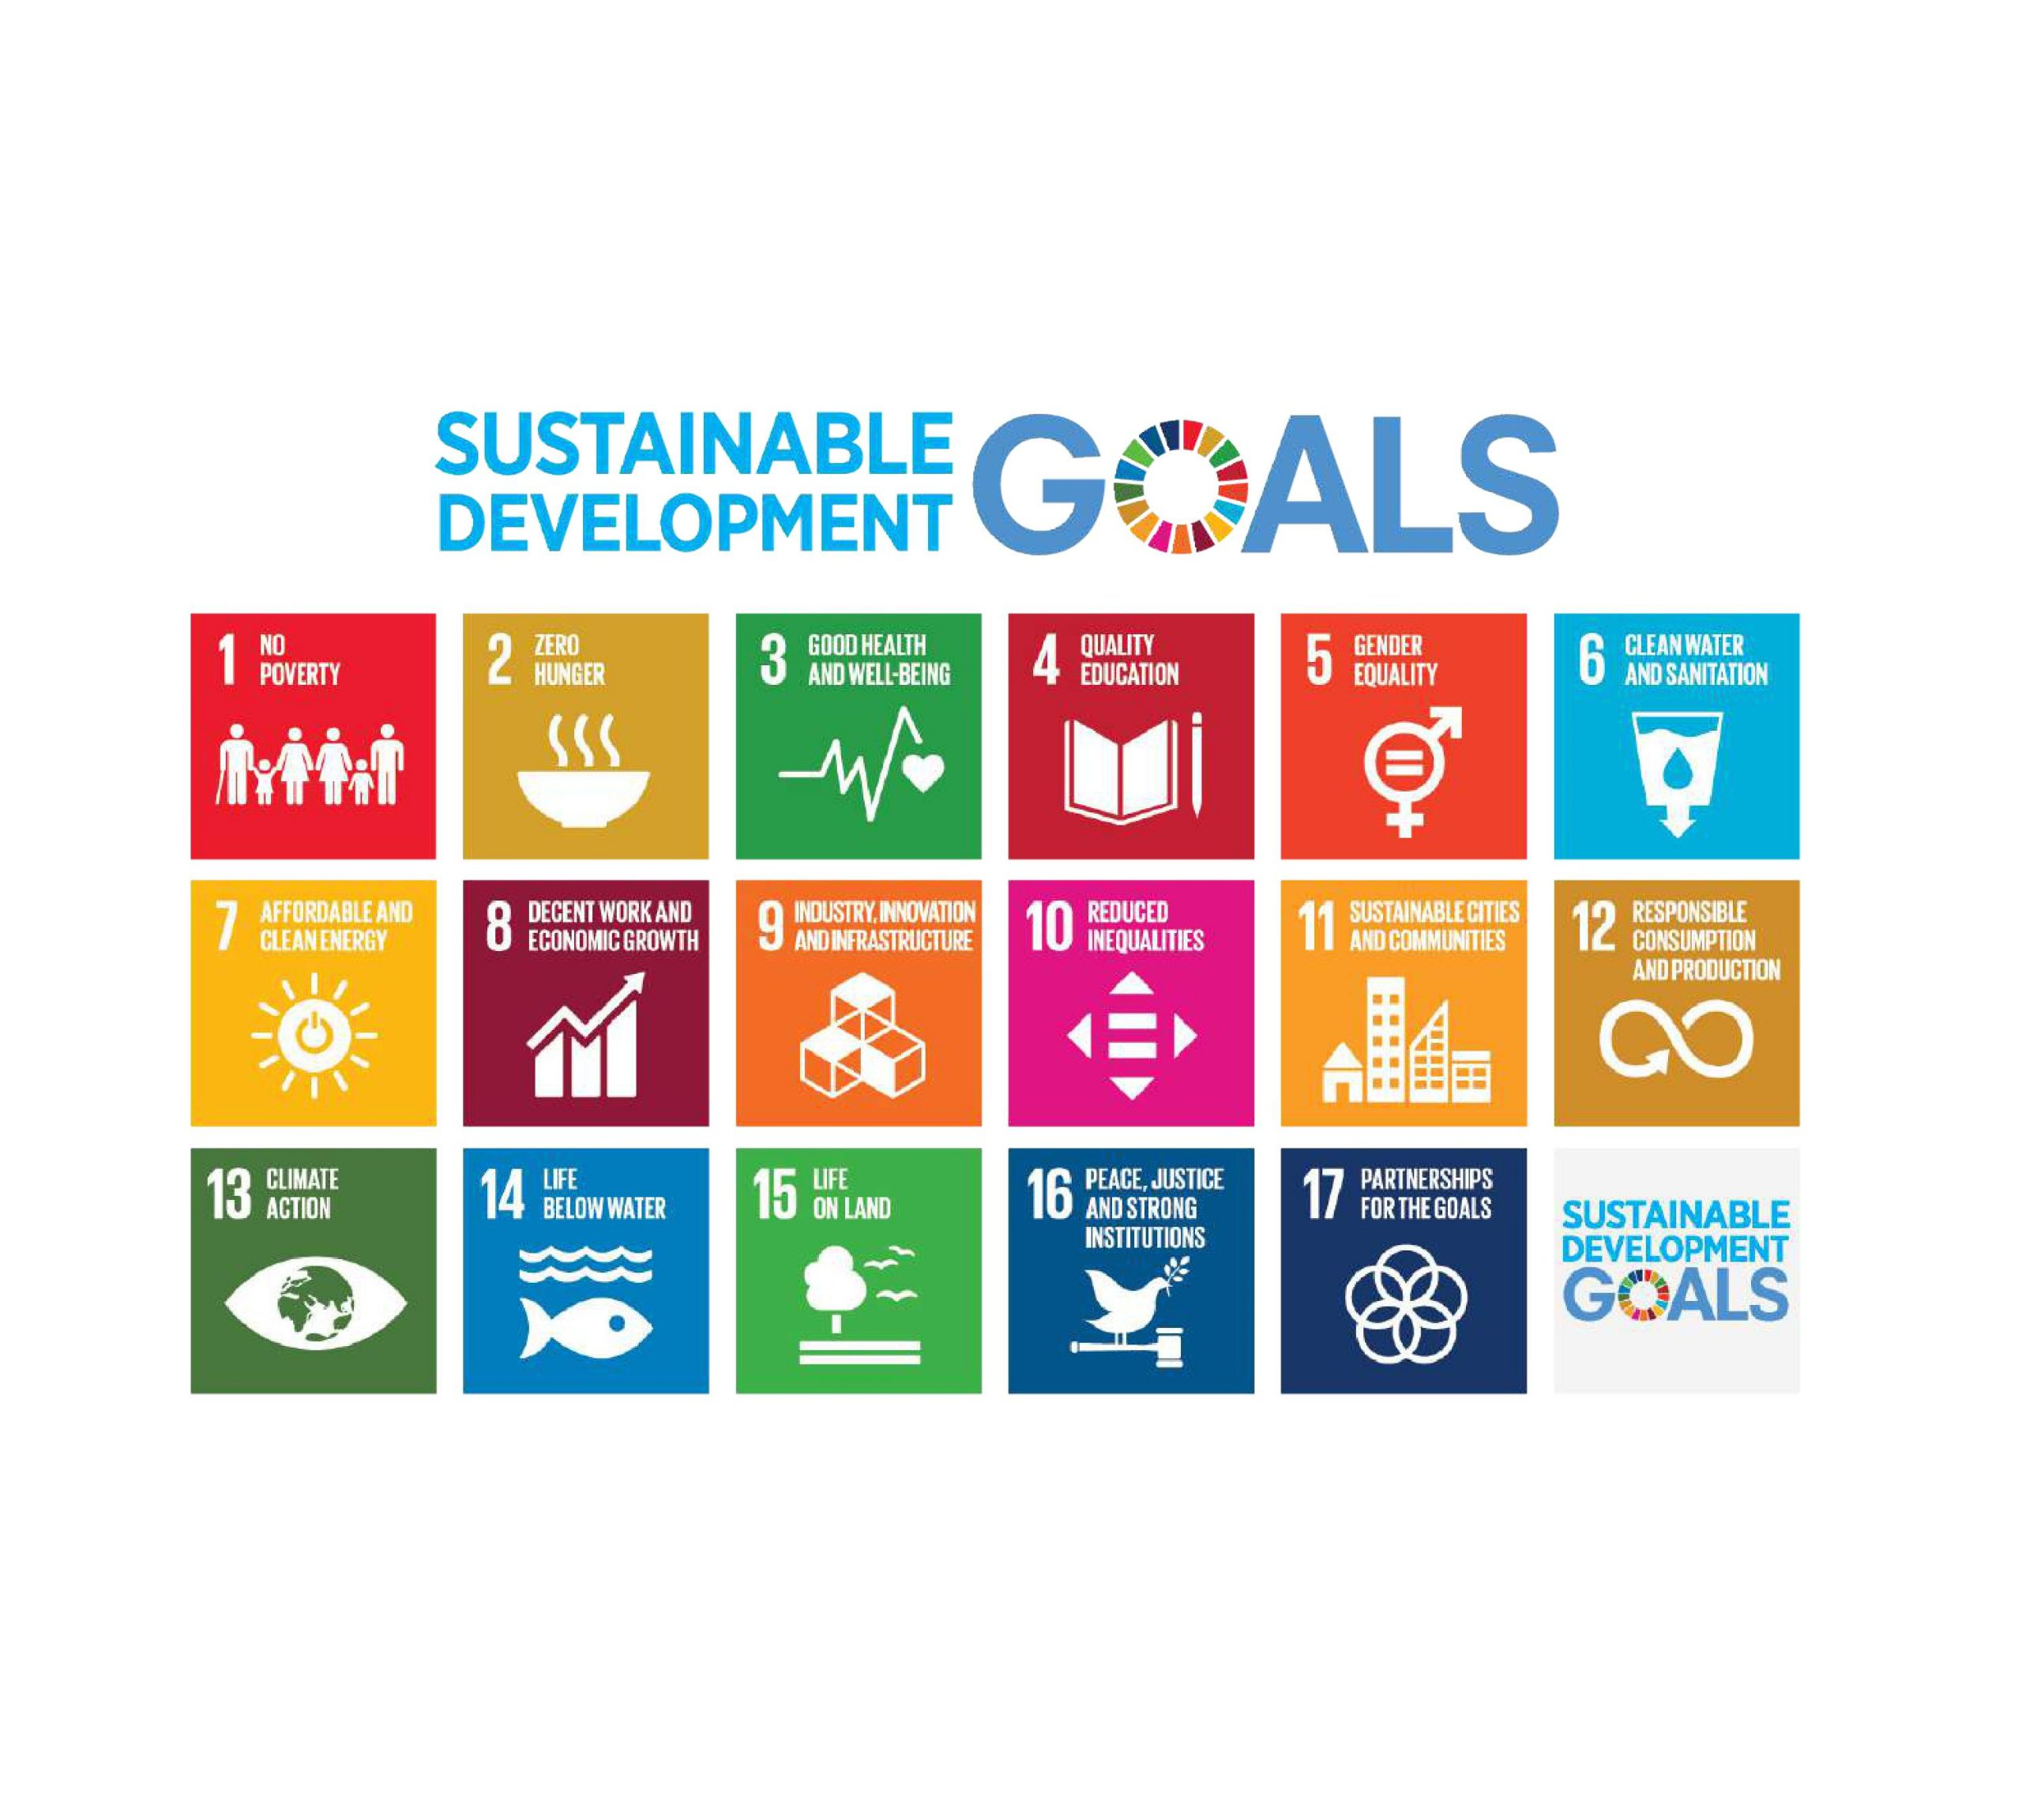 Graphic of the UN Sustainable Development Goals